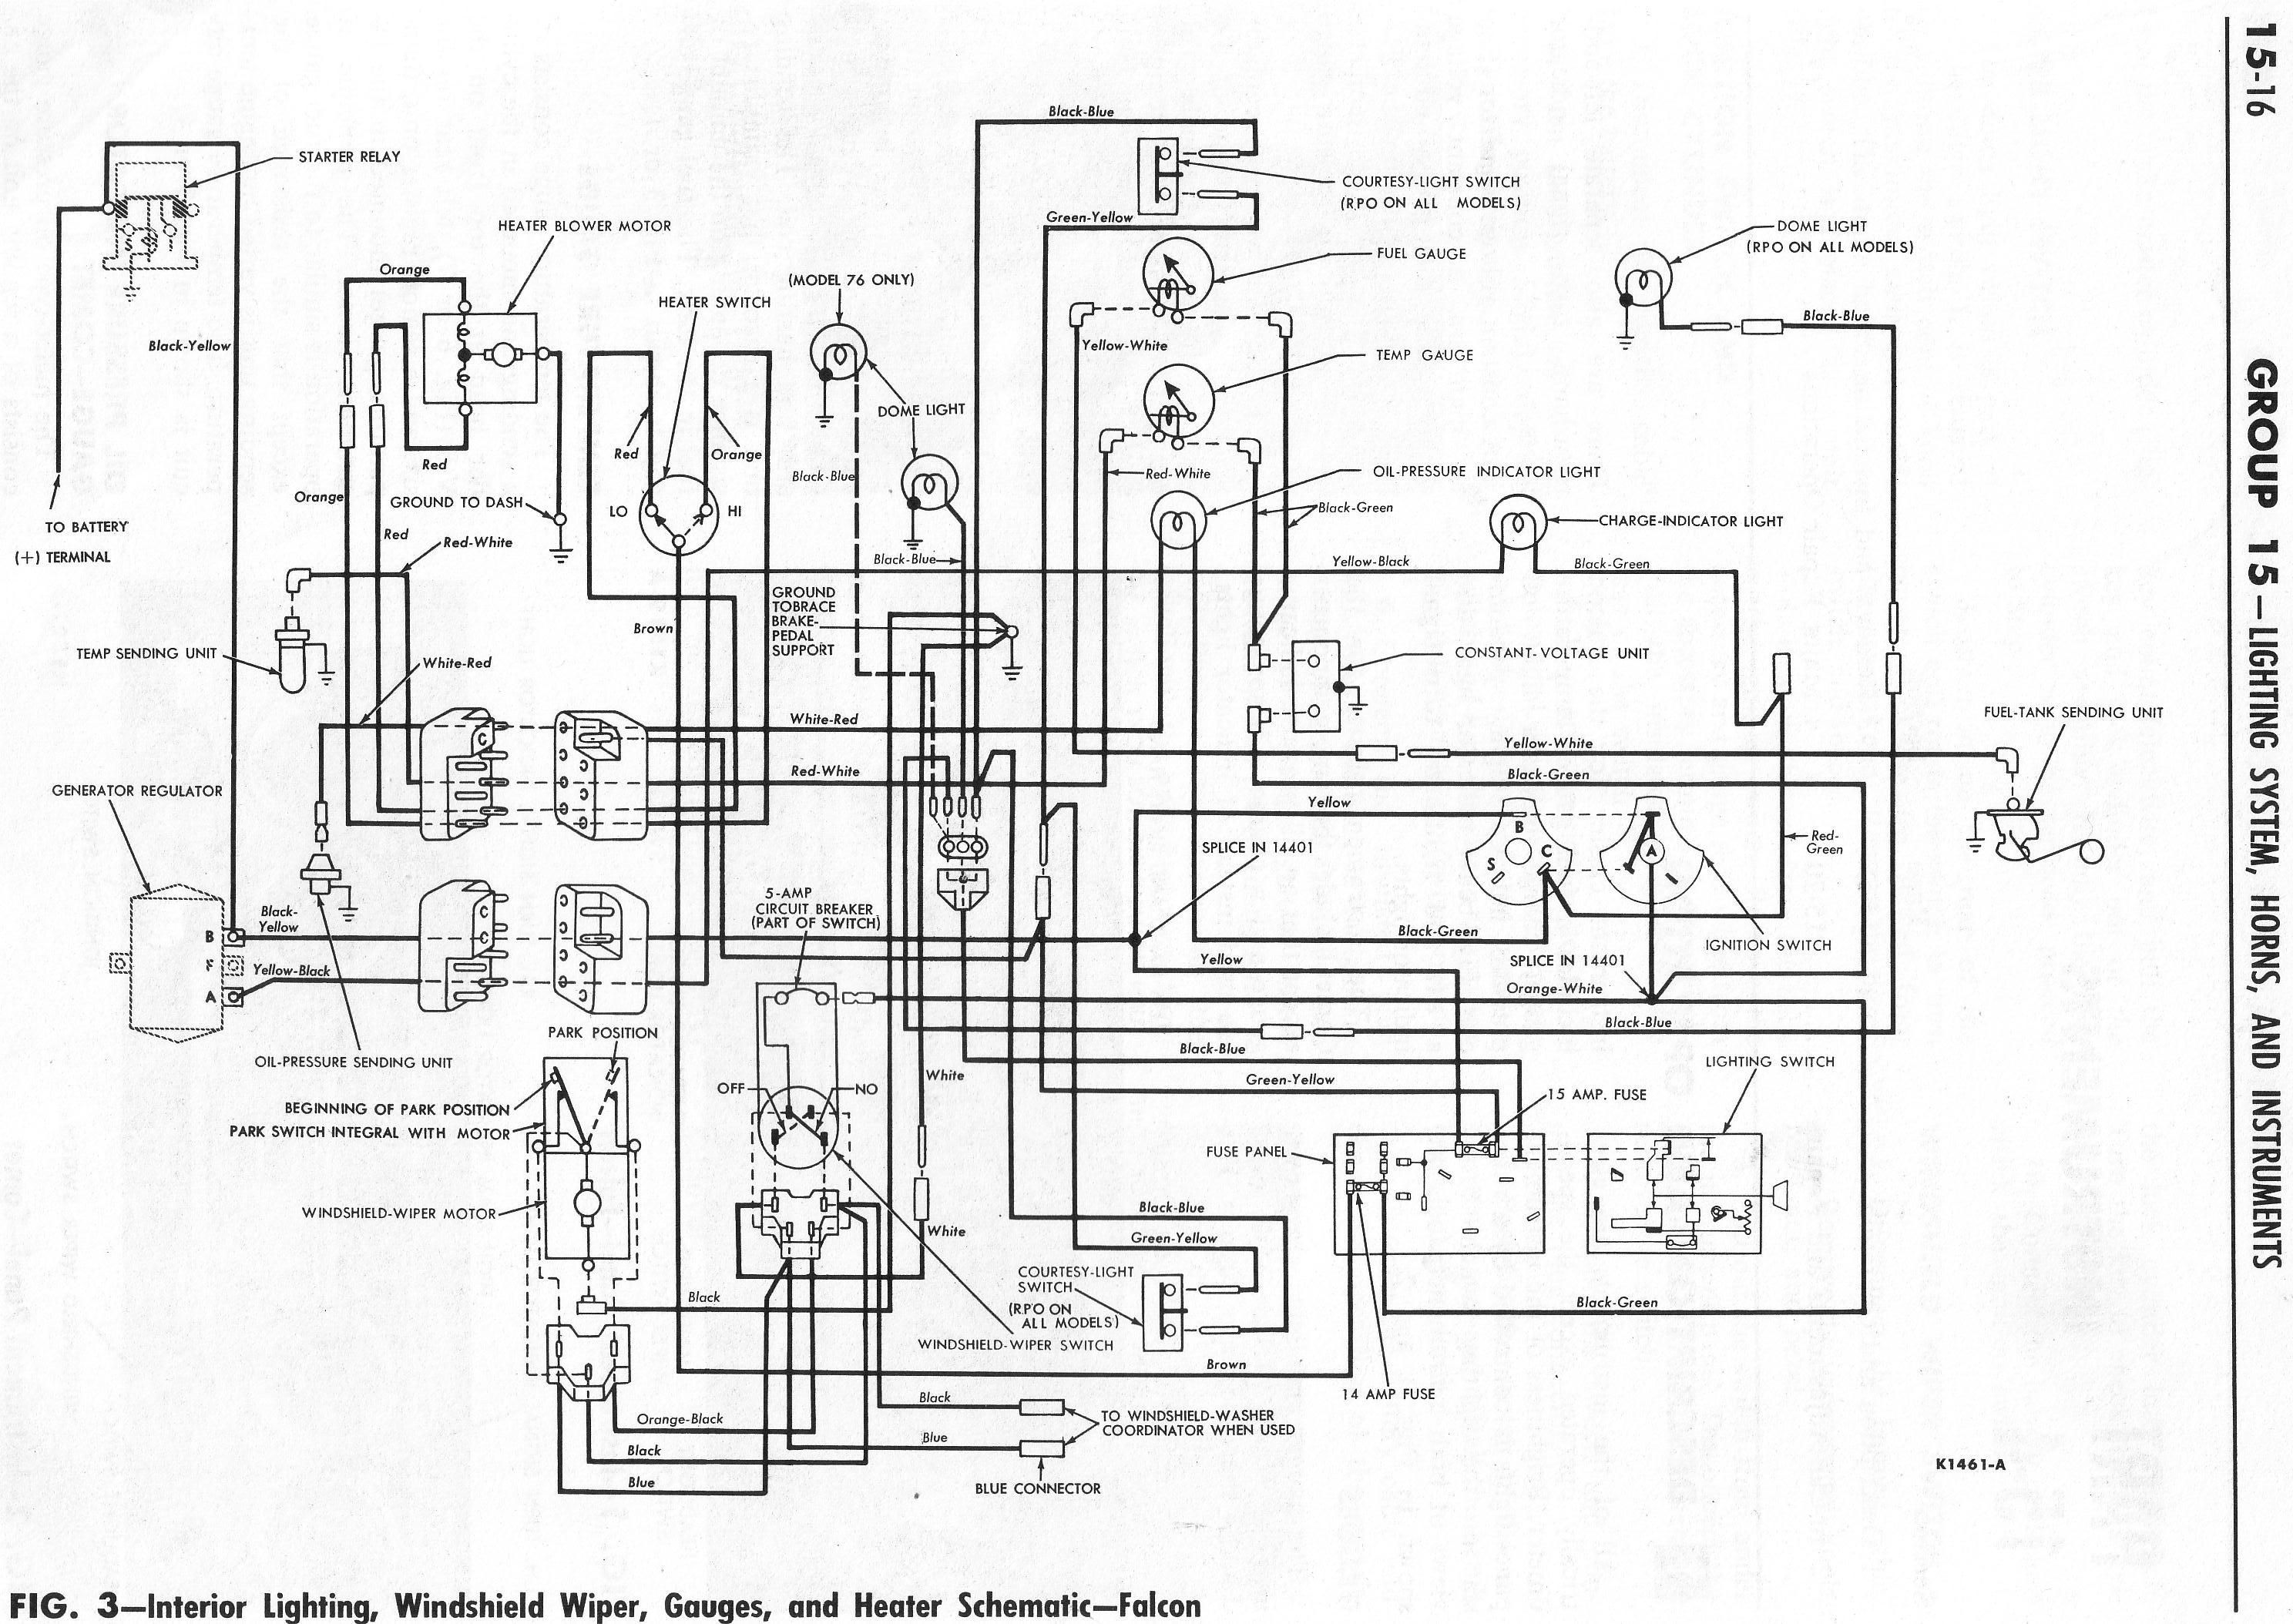 1964 ford falcon wiring diagram for interior lighting